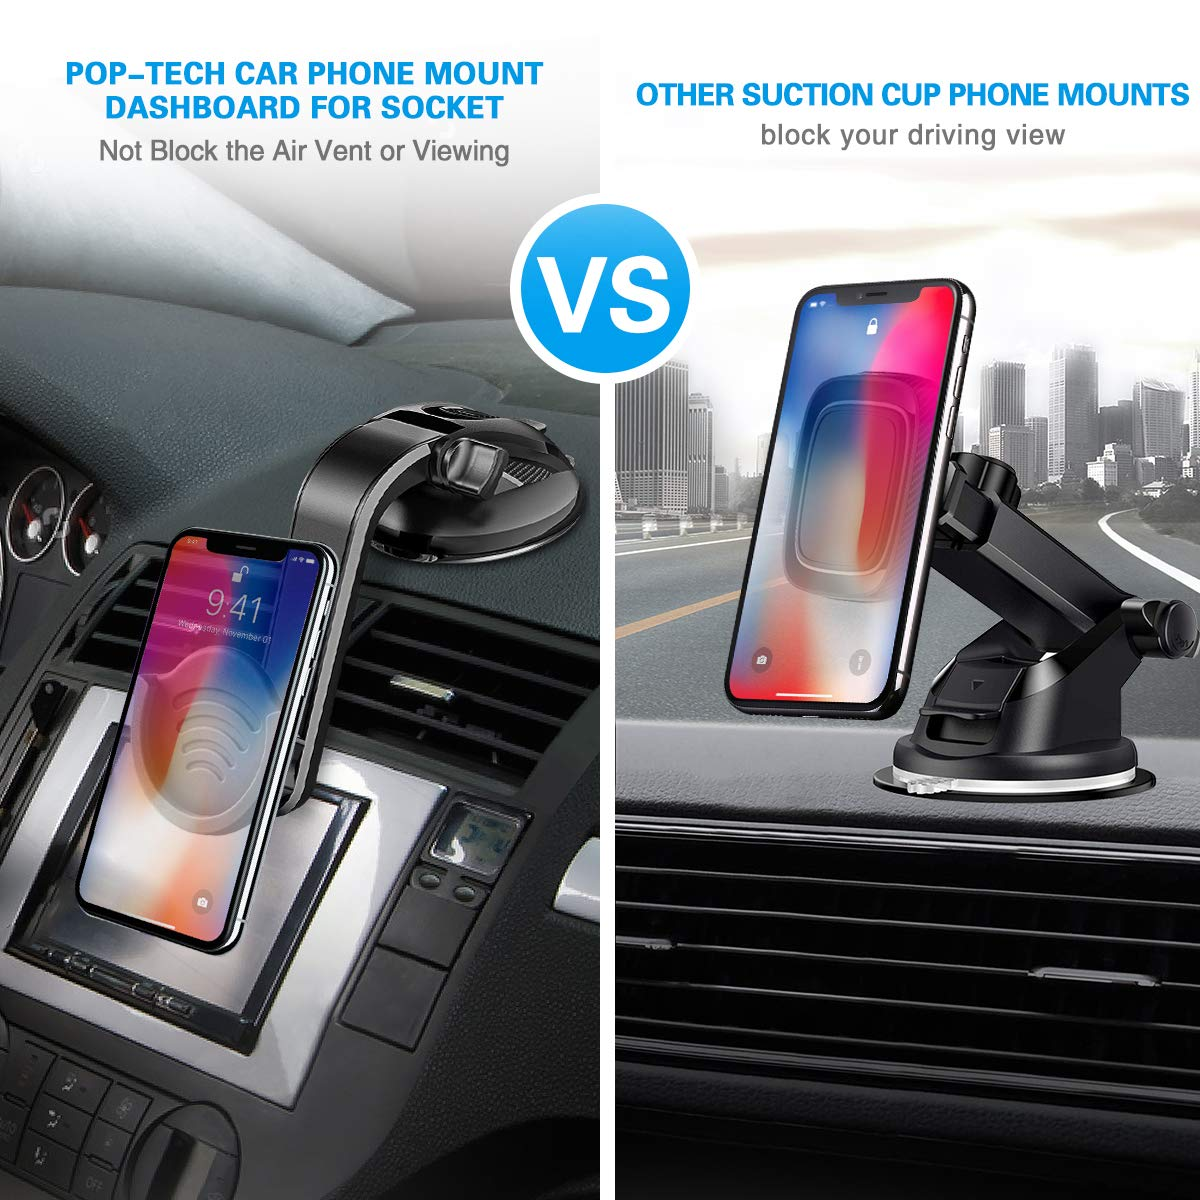 Suction Cup Phone Holder for Socket Users pop-tech Dashboard Car Phone Mount for Collapsible Grip with Adjustable 360/°Rotation Includes 3M Sticky Adhesive Replacement for Expanding Stand Black